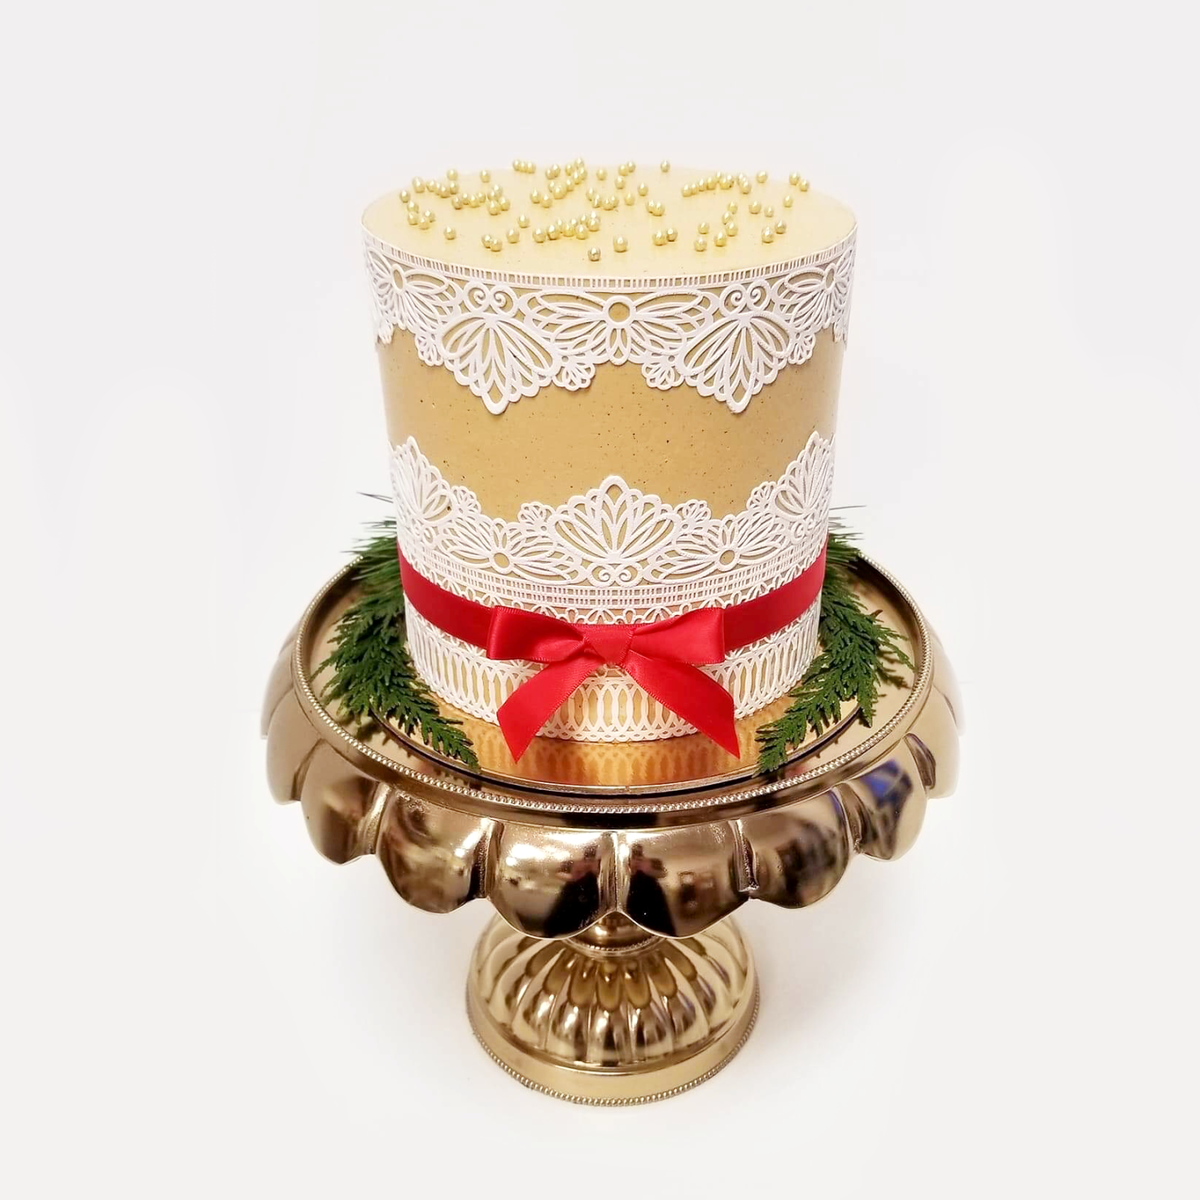 Whippt Desserts - Auction Cake Dec 6